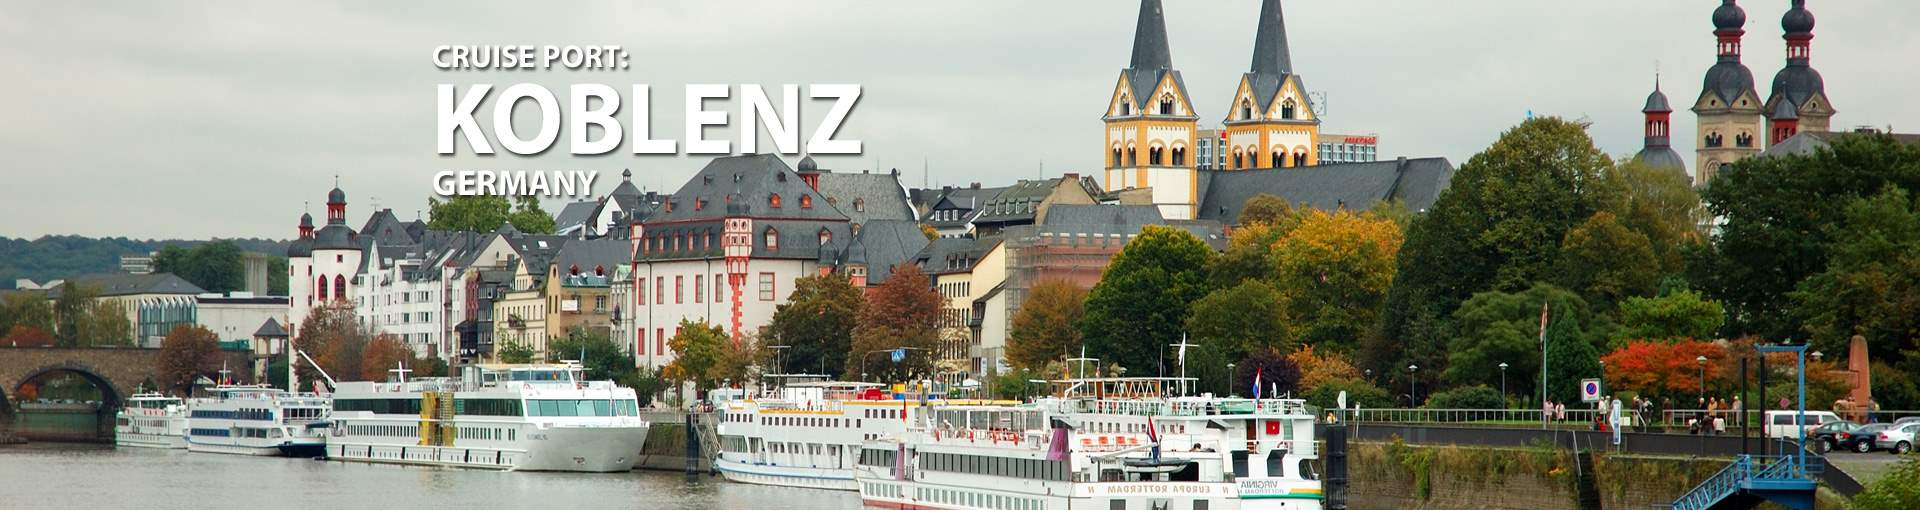 Cruises to Koblenz, Germany